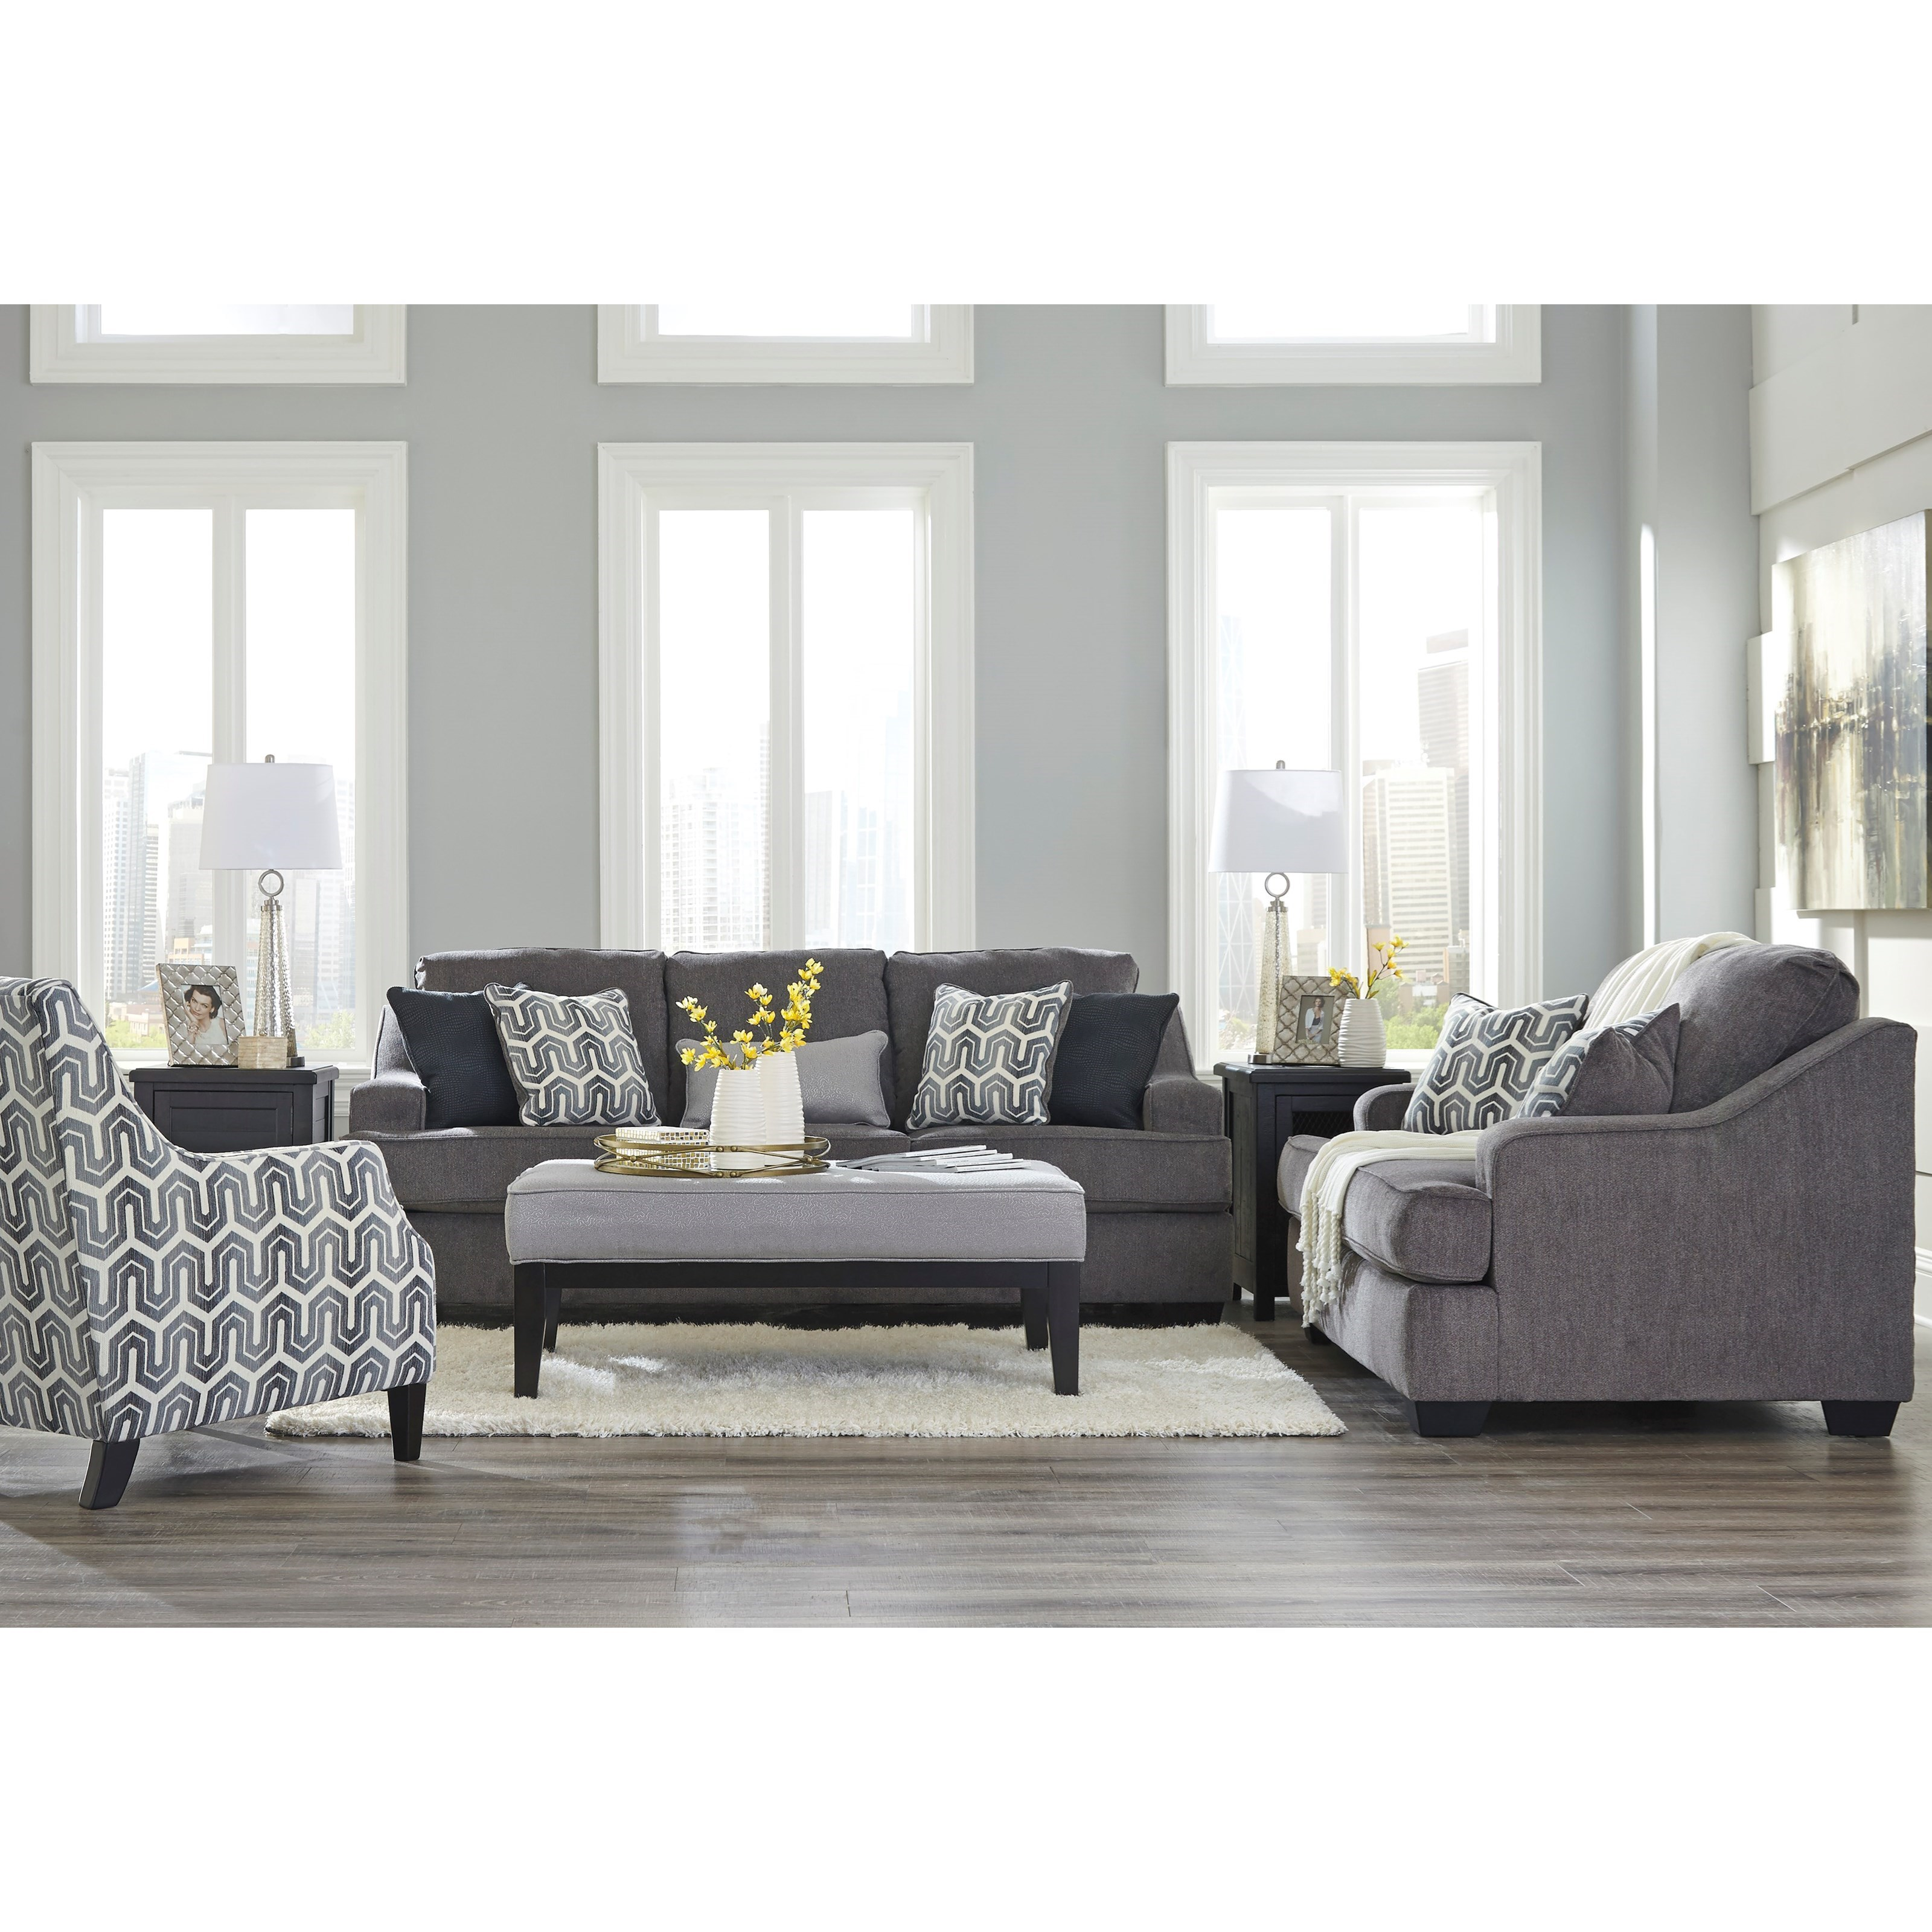 signature design by ashley gilmer 6560338 contemporary sofa with track arms john v schultz. Black Bedroom Furniture Sets. Home Design Ideas